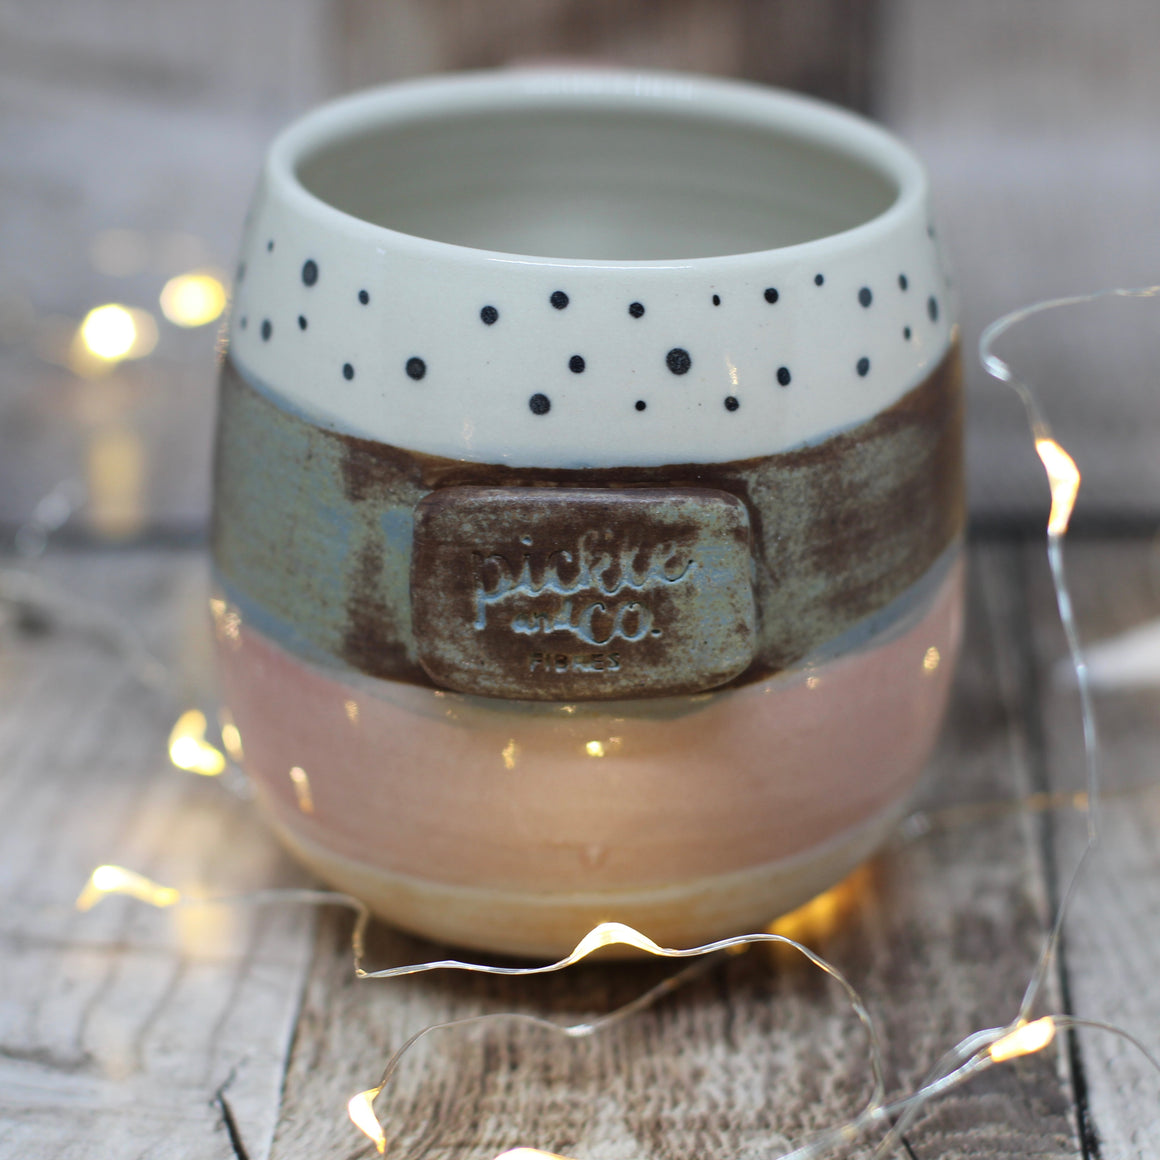 Pickle and Co Fibres Mug - Rusty Blue and Dots